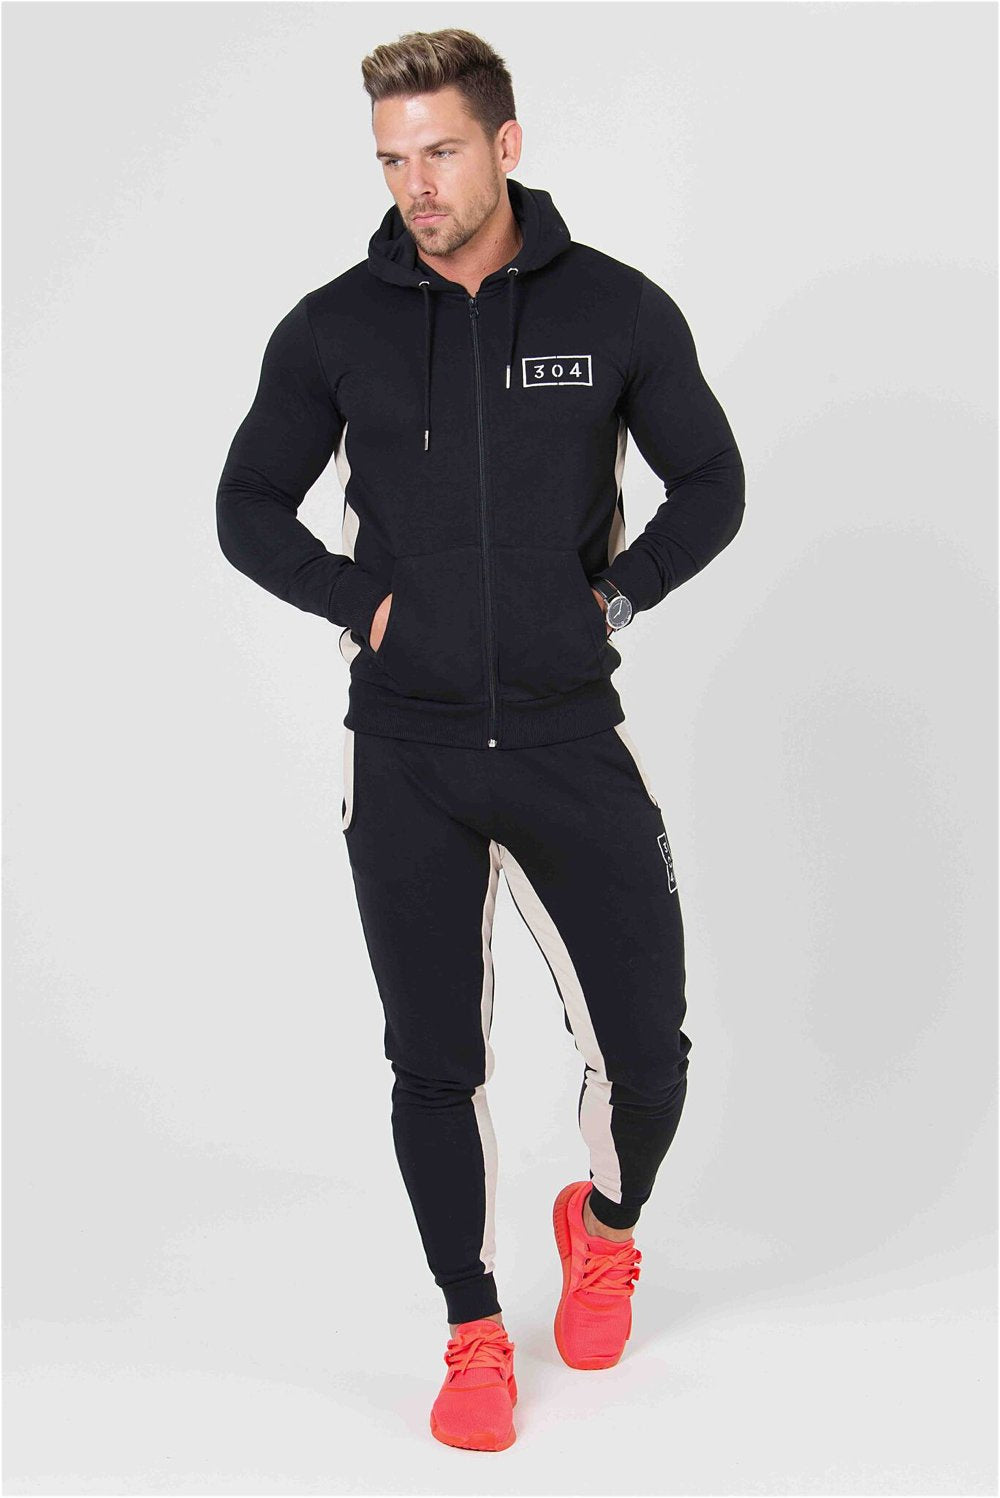 304 Clothing RJ Joggers - Black - 1